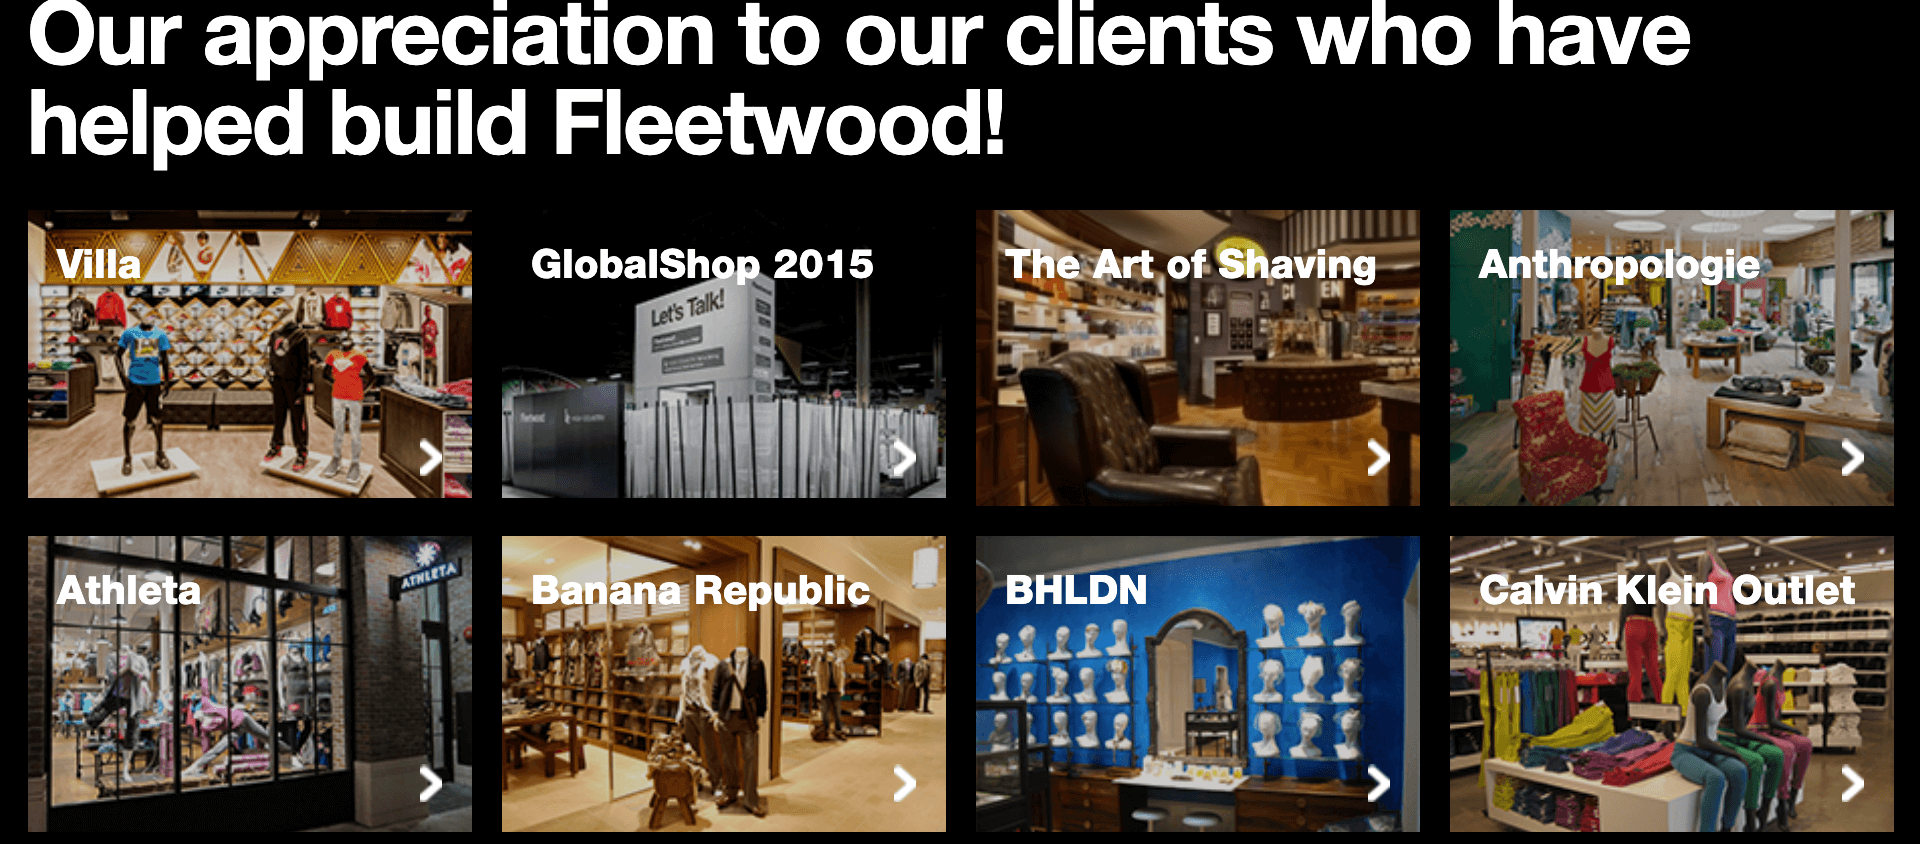 When department stores go down, suppliers go with them. Fleetwood Industries